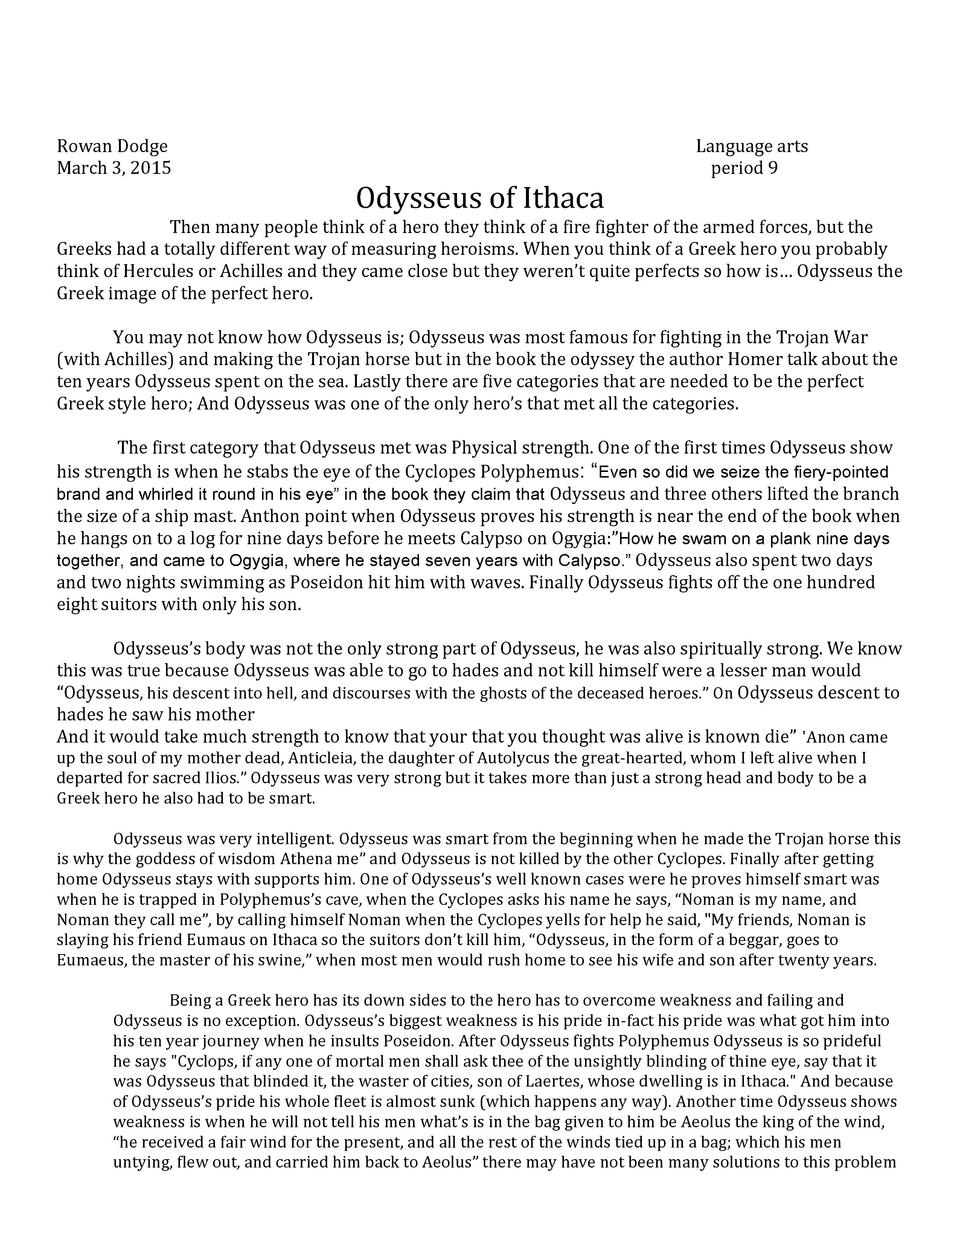 odysseus is not a hero essay Morgan kraft period 2 october 11, 2011 1st quarter essay jack sparrow is a selfish hero he thinks of himself most, but he truely cares for his men.